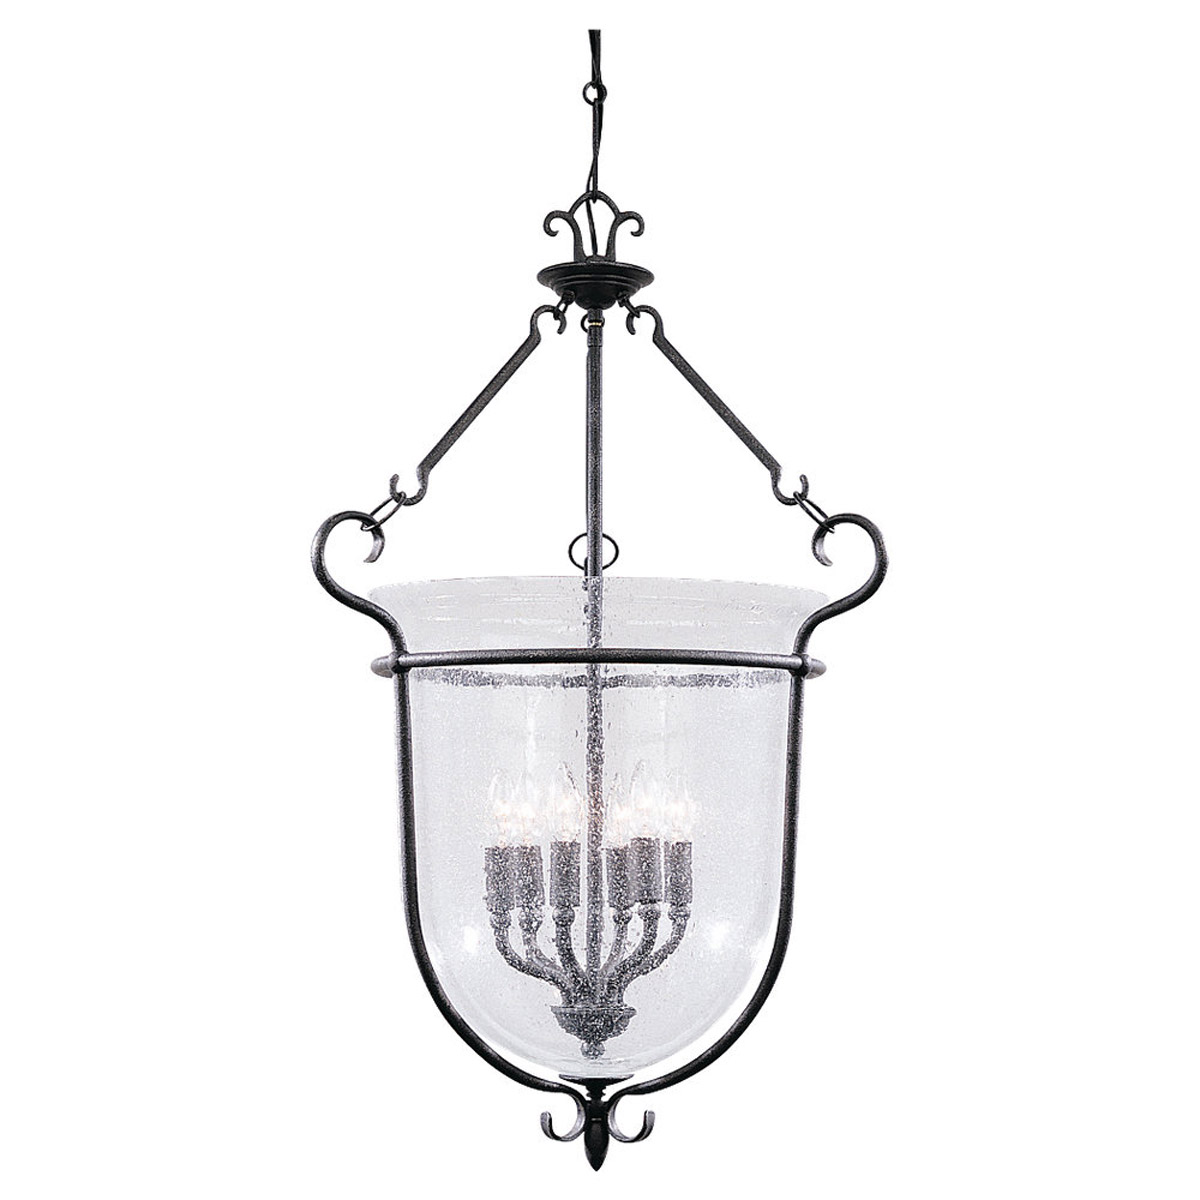 Sea Gull Lighting Manor House 6 Light Foyer Pendant in Weathered Iron 5104-07 photo